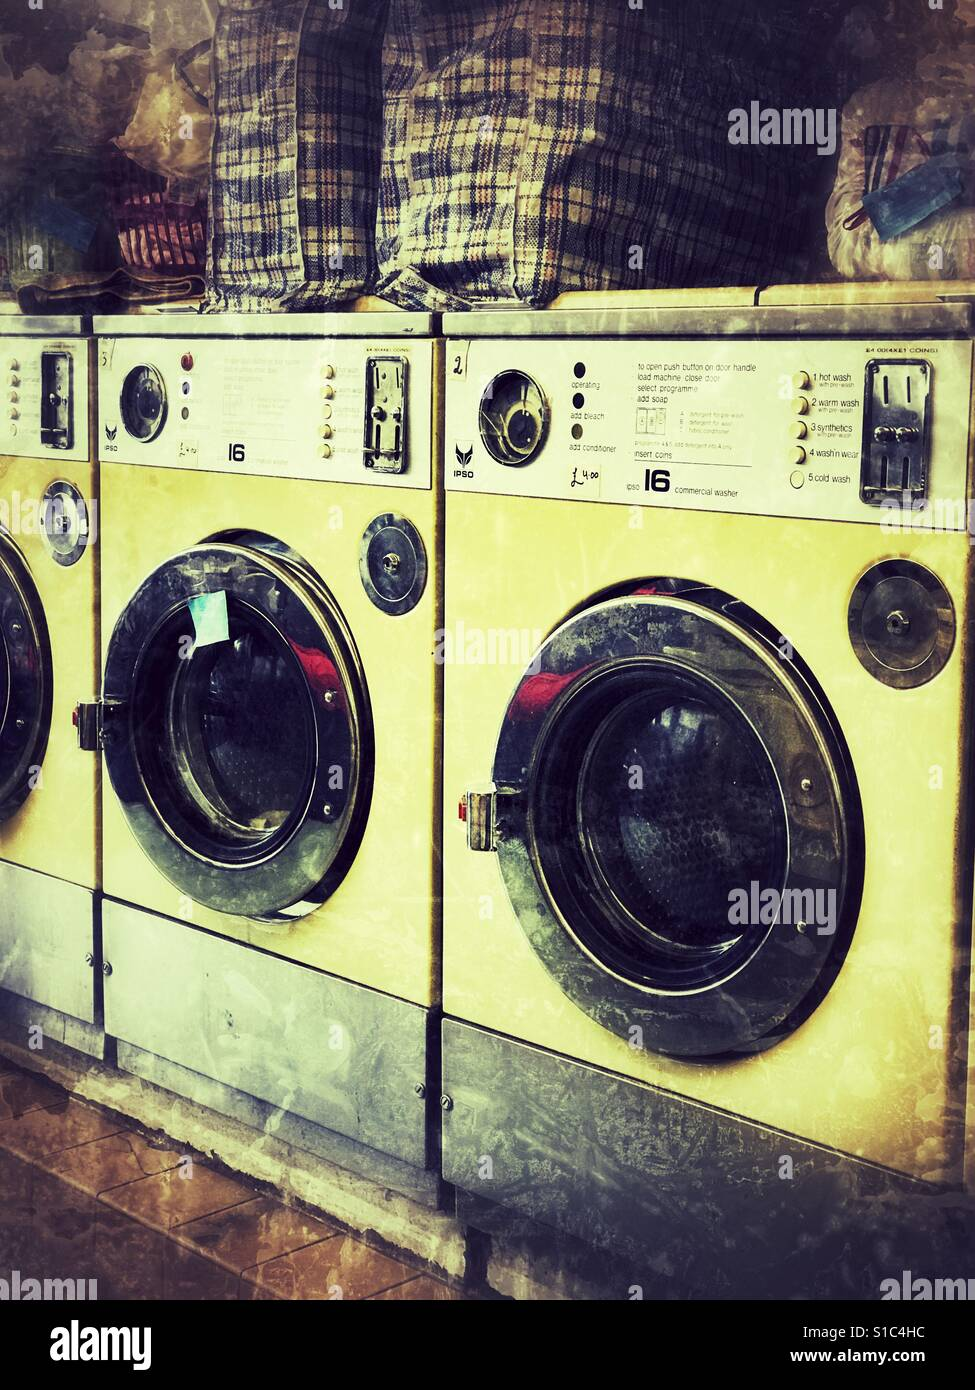 Washing machines in a launderette - Stock Image